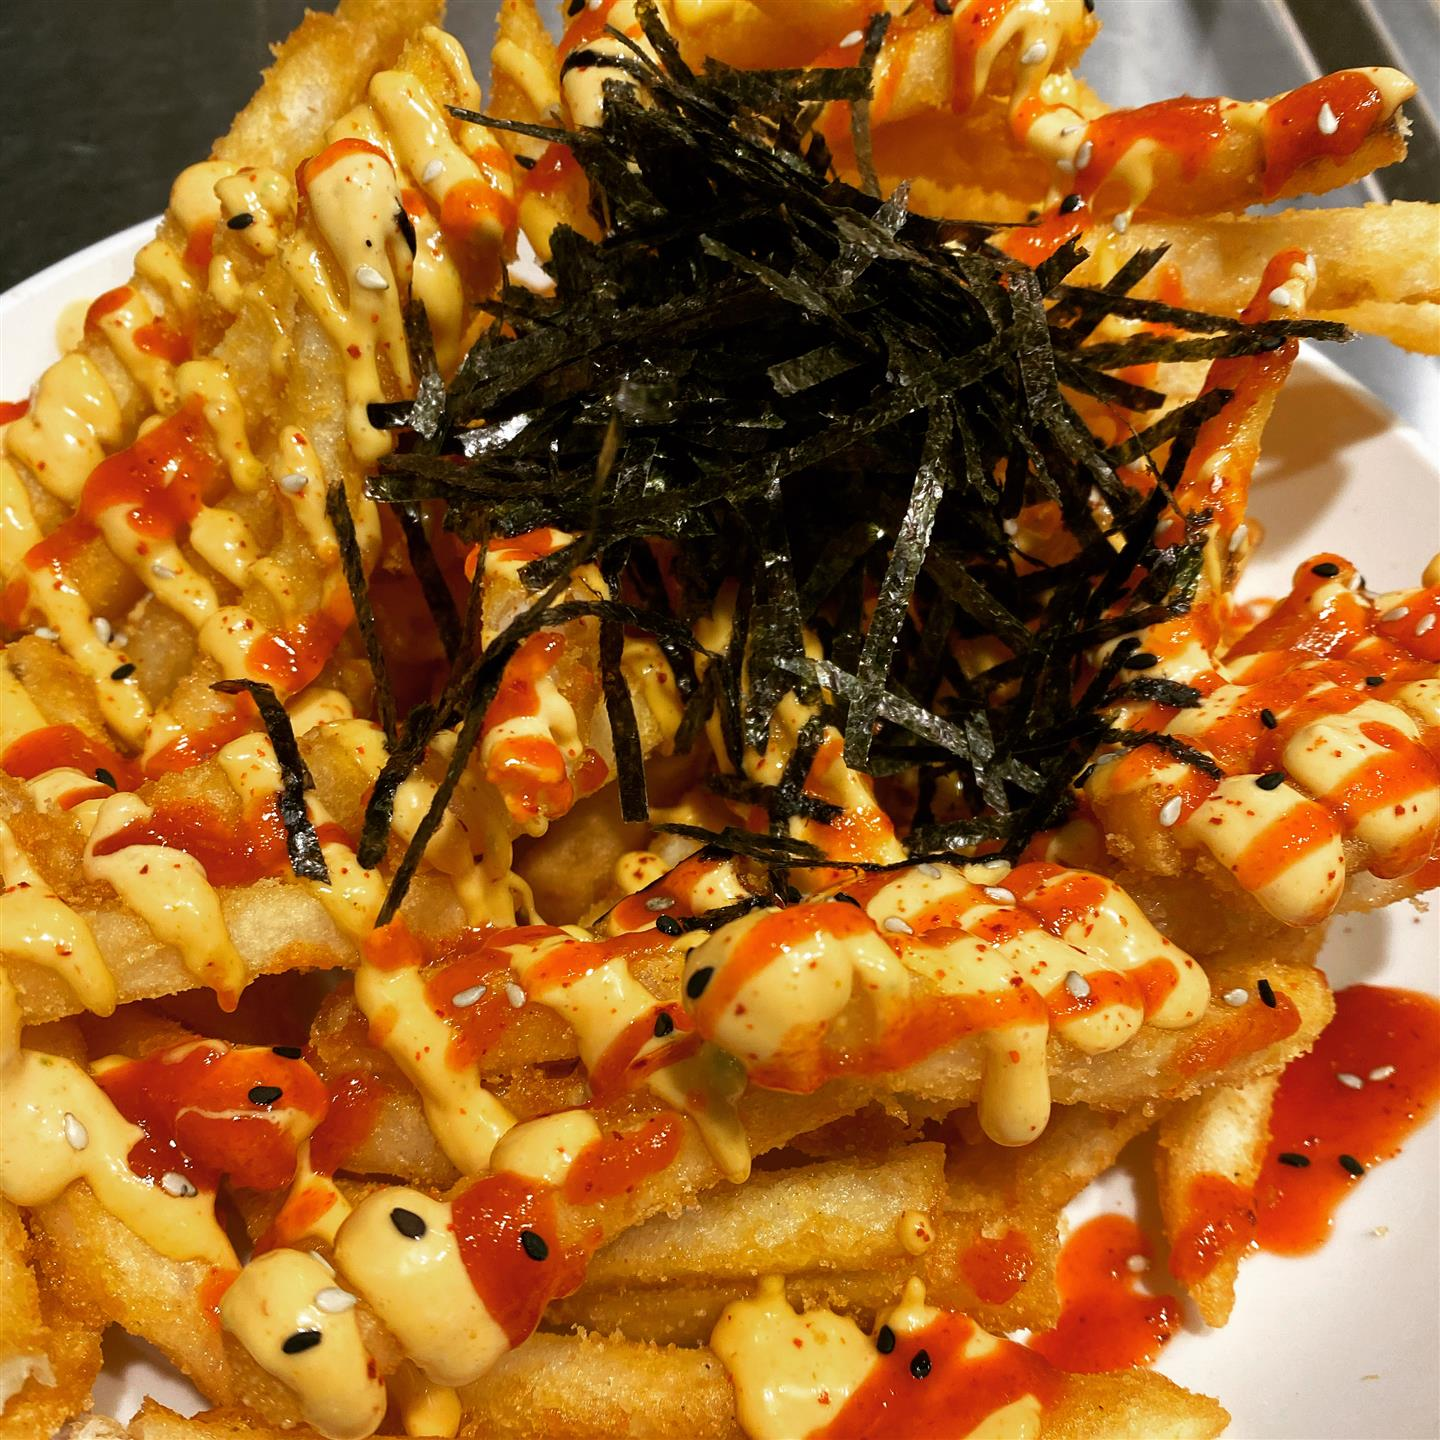 Spicy Asian Fries